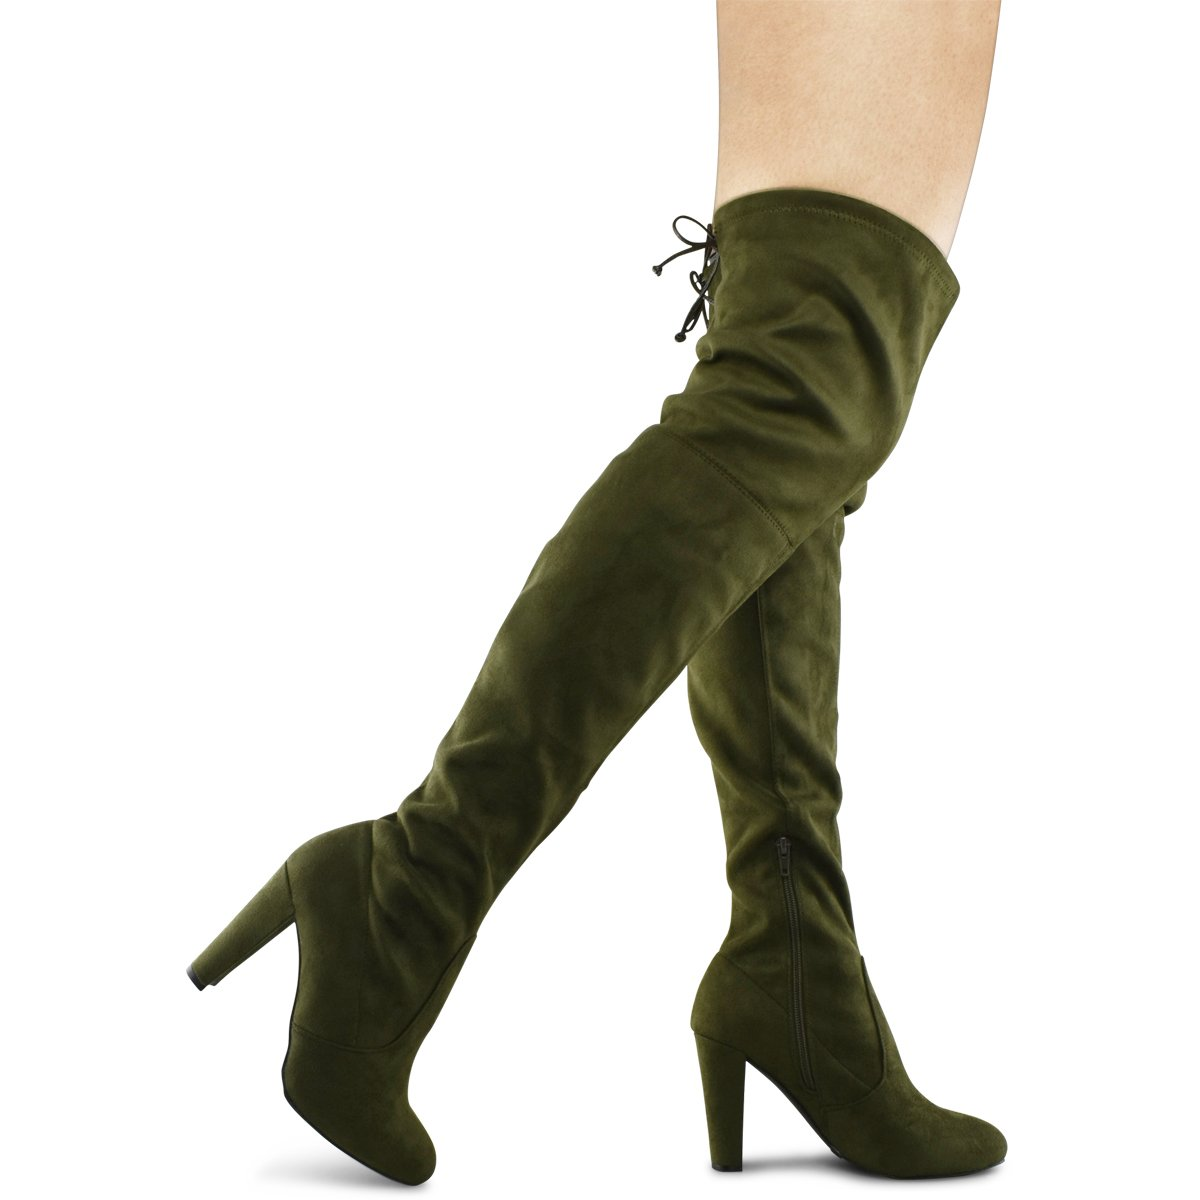 5c9b25efa565 Get Quotations · Premier Standard Women's Over The Knee Boot - Sexy Over  The Knee Pullon Boot - Trendy